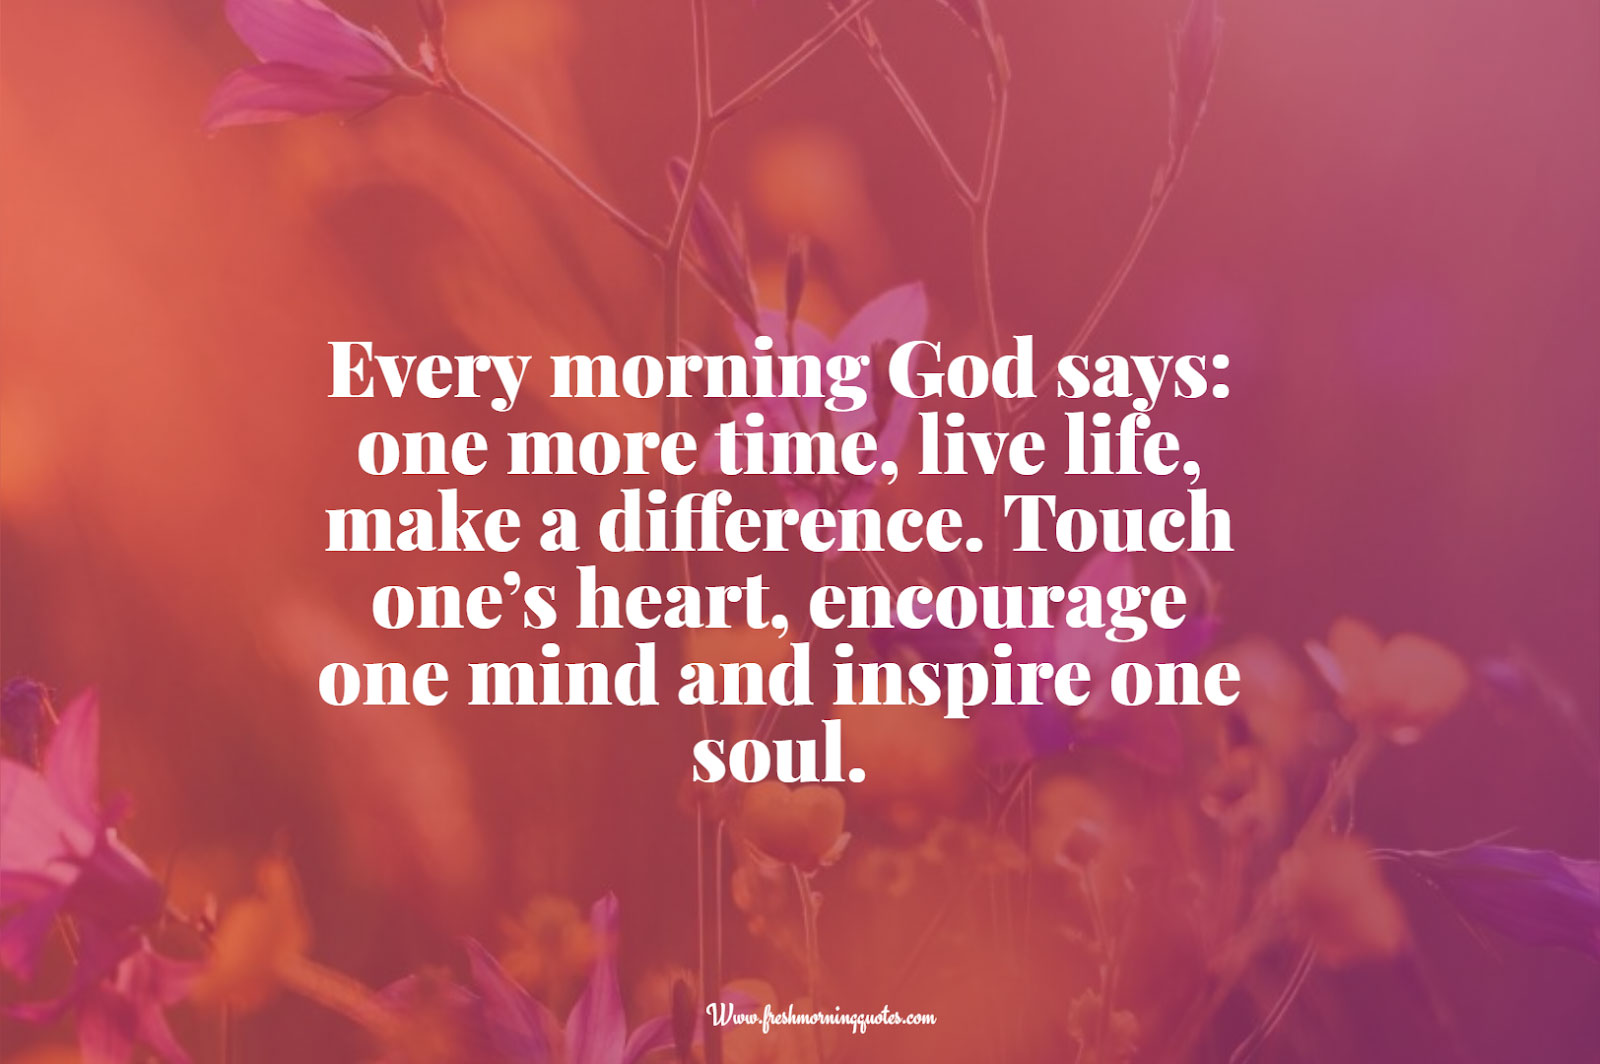 every morning god says Sunday quotes images